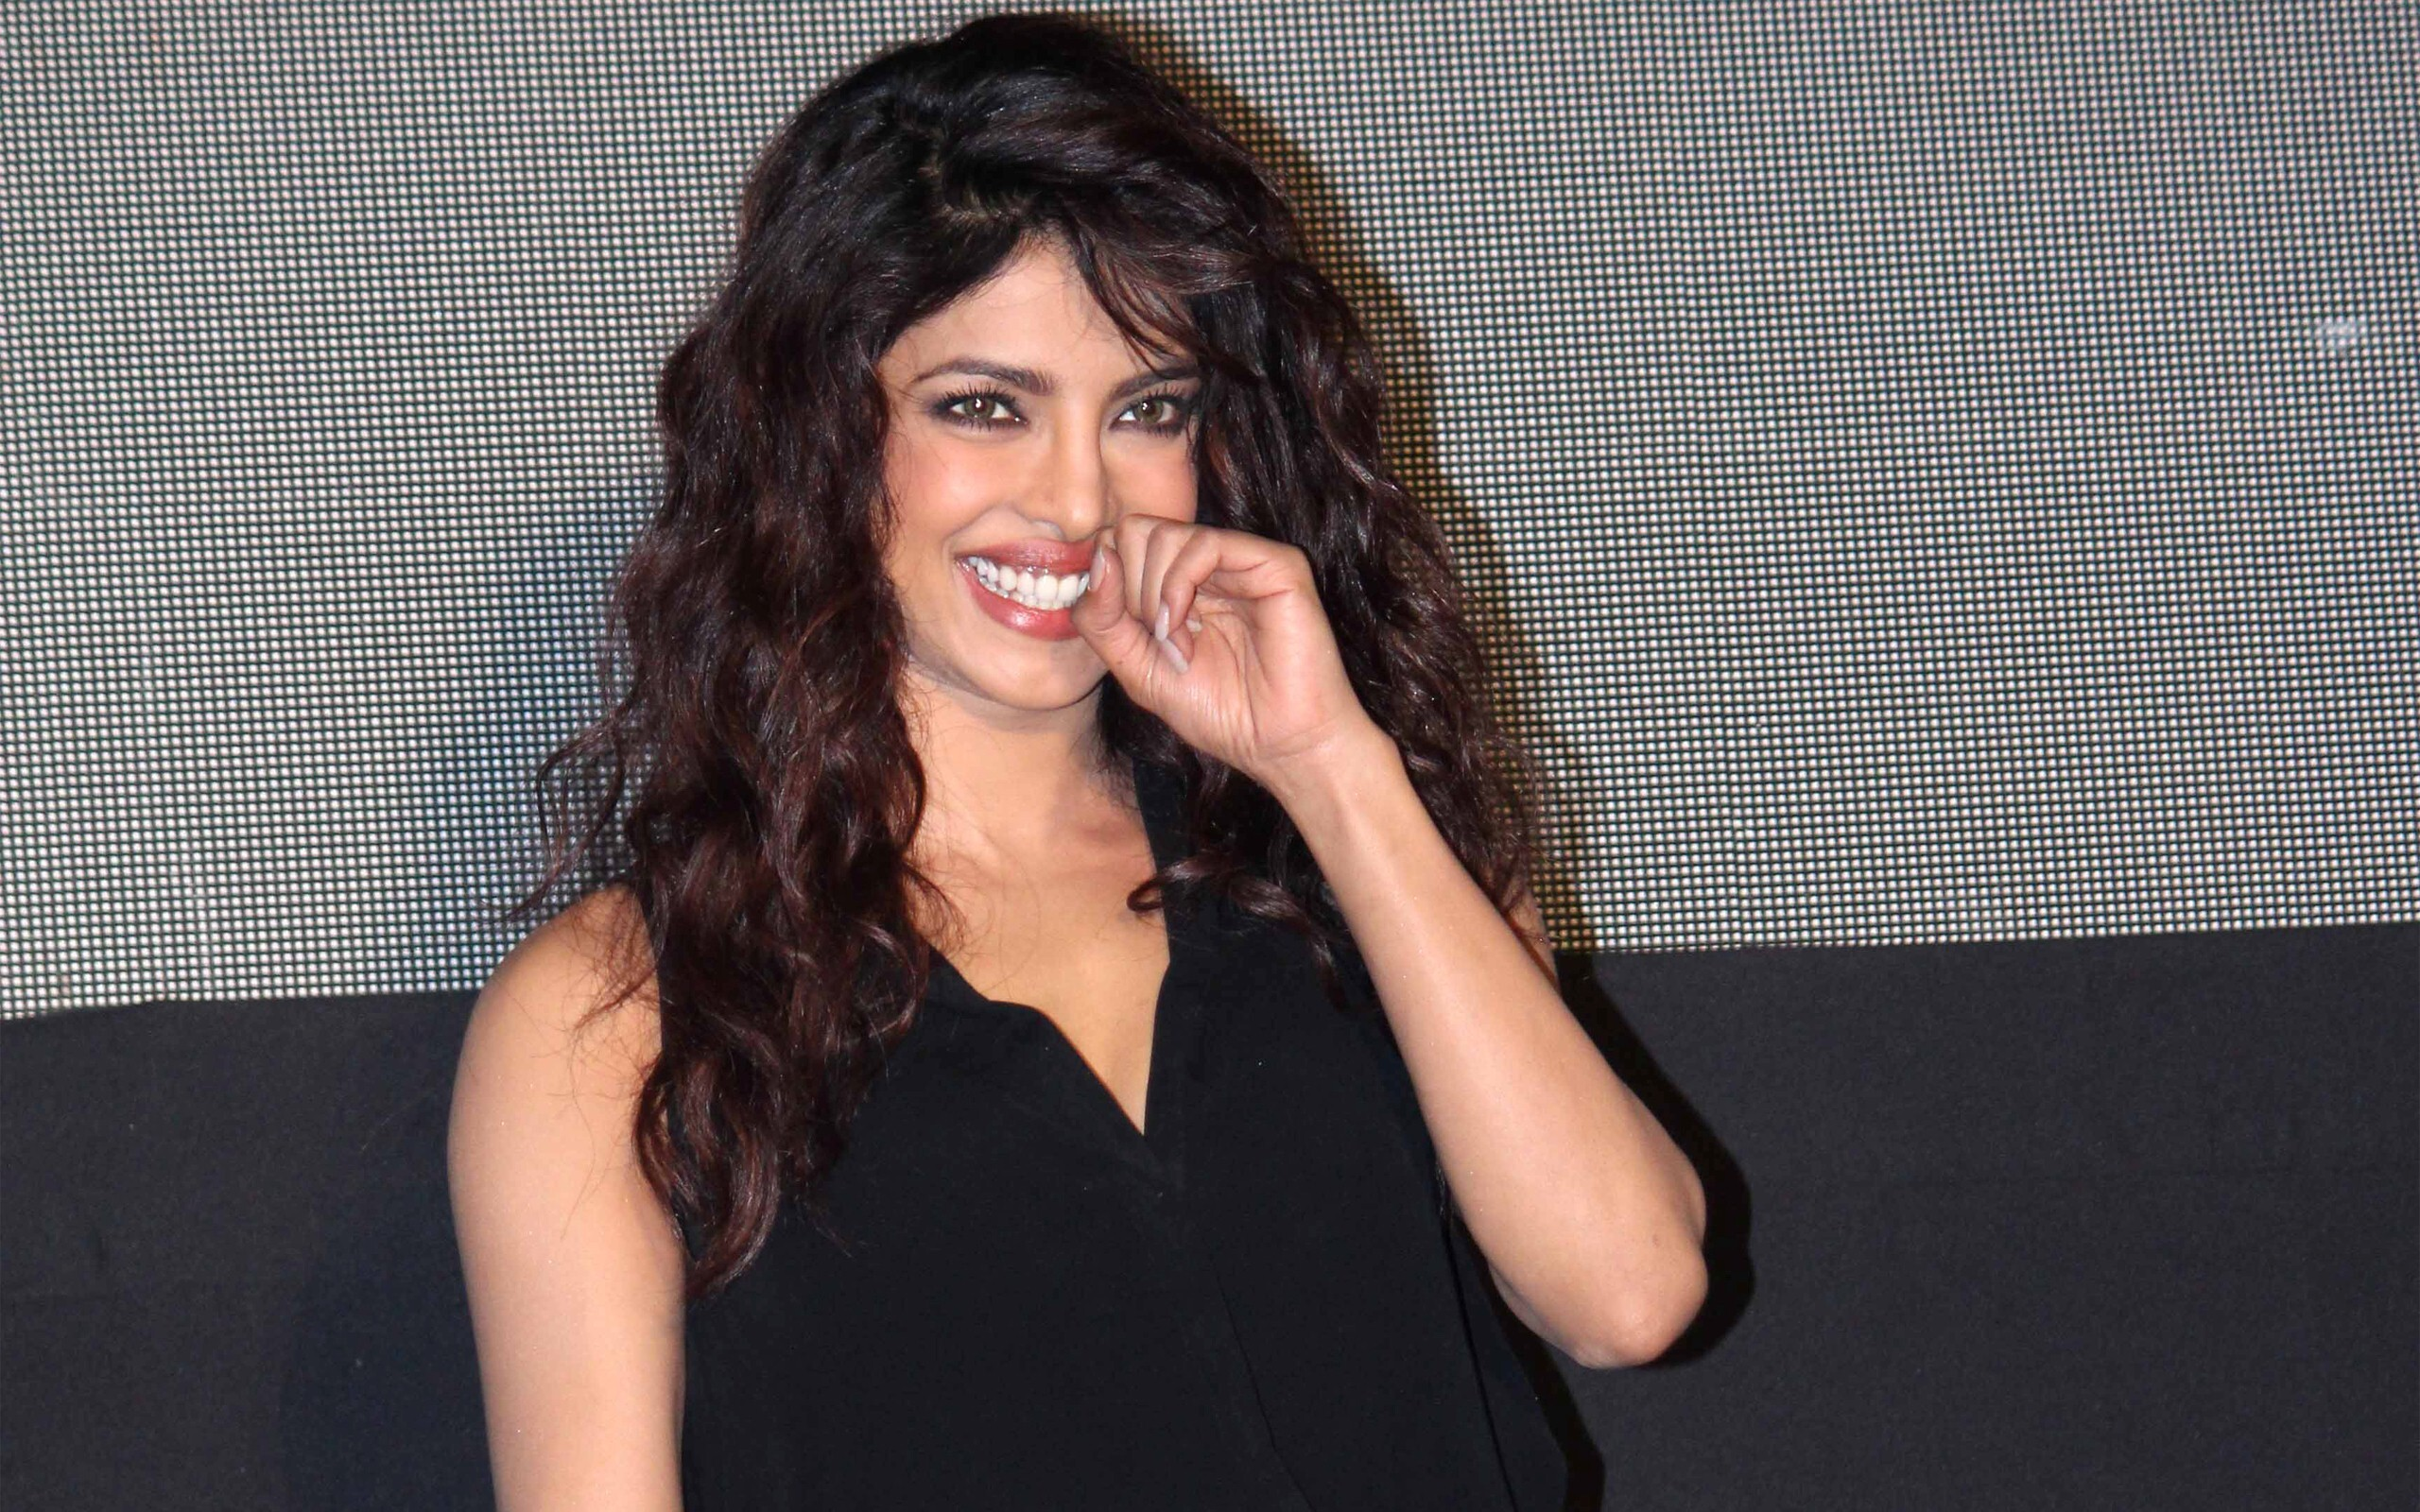 ... of Bollywood Actress Priyanka Chopra HD Wallpapers | HD Wallpapers